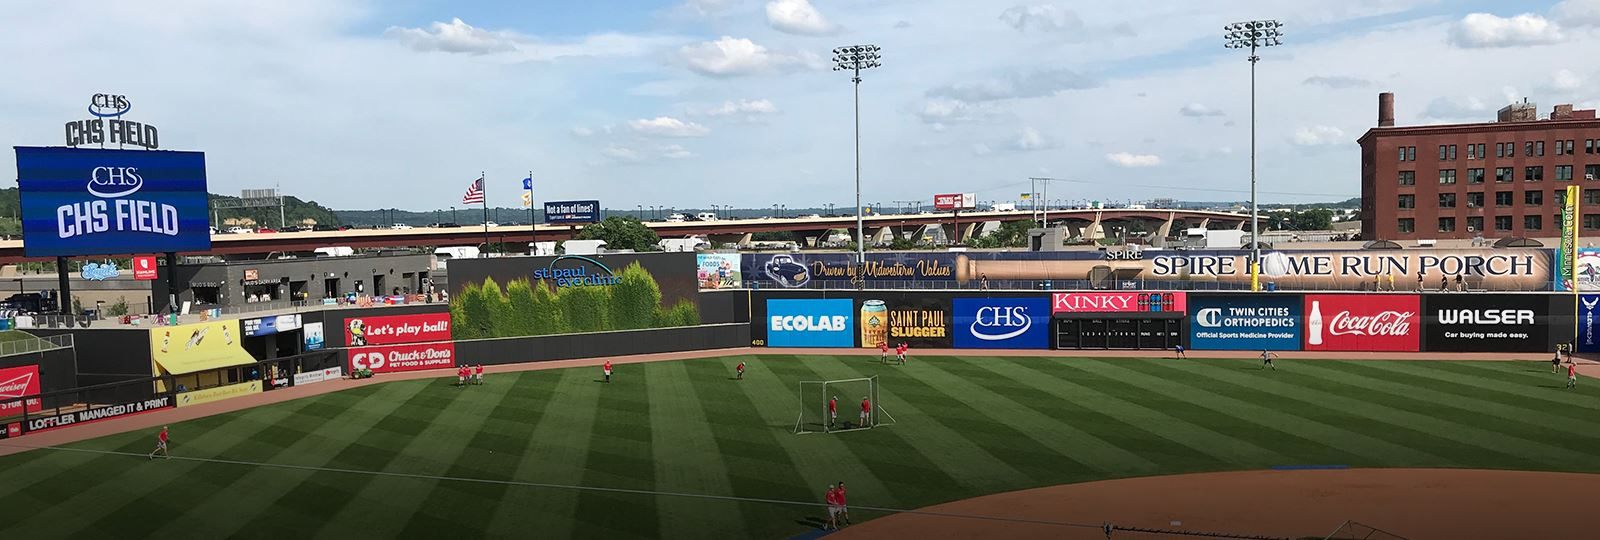 CHS Field photo